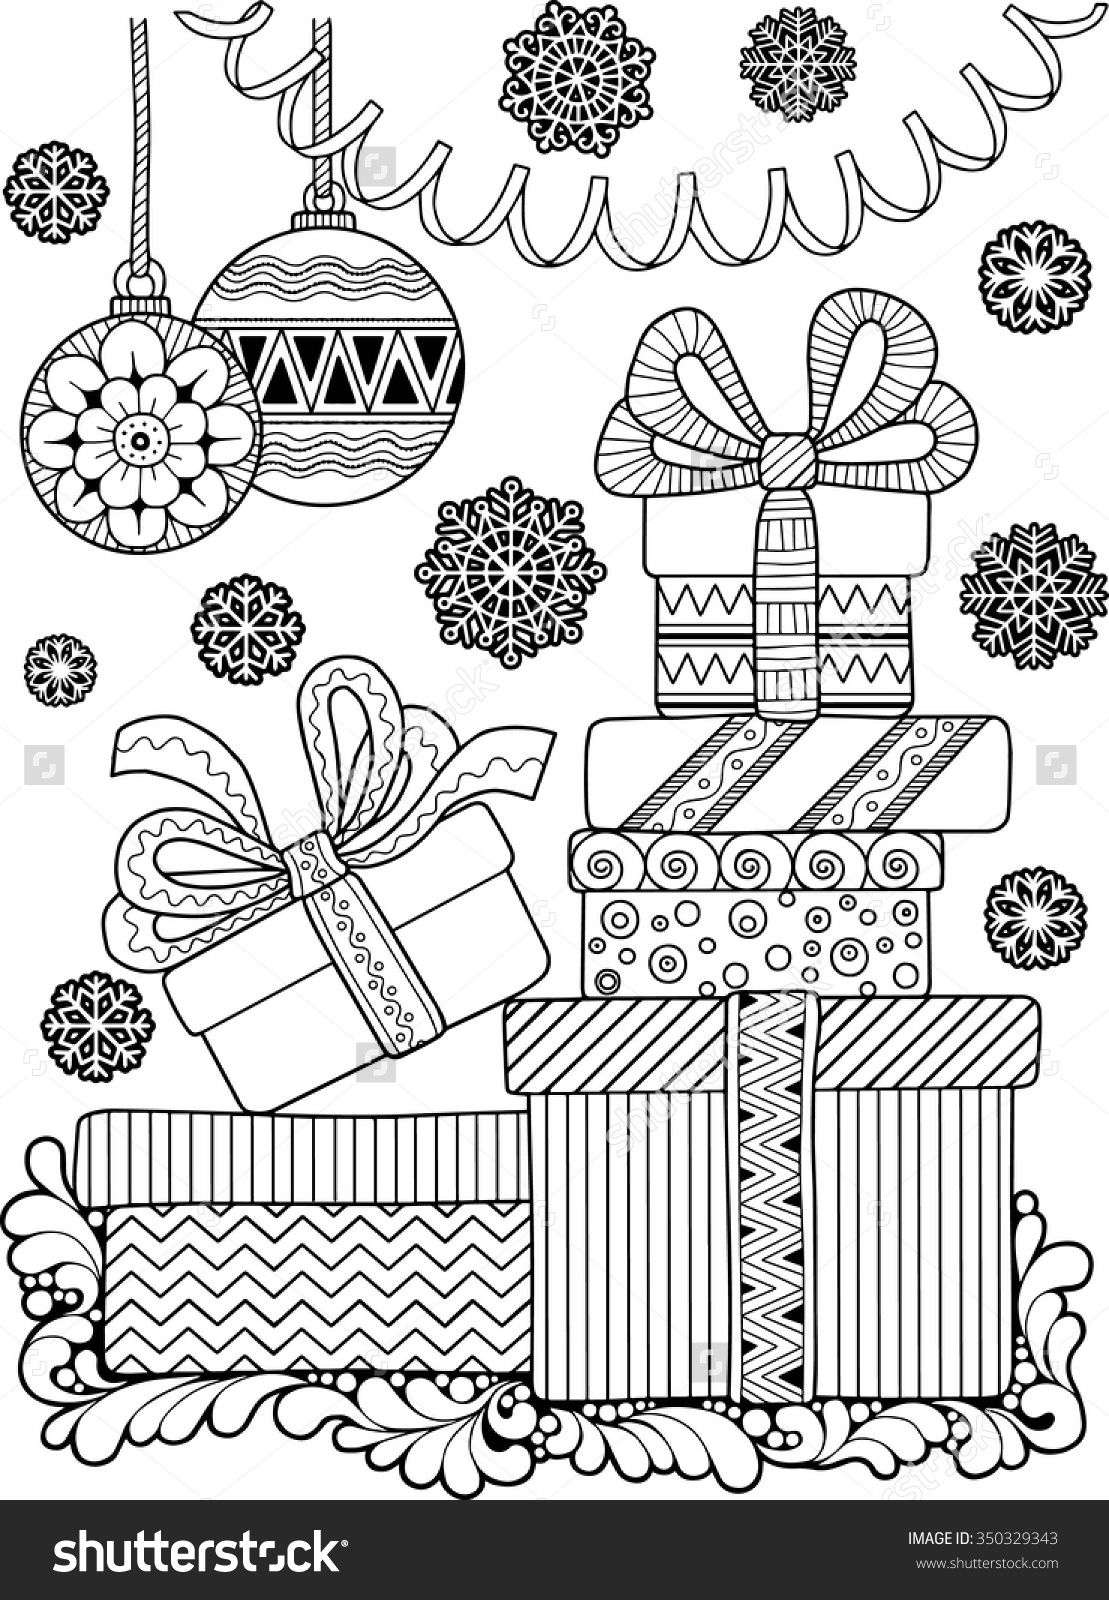 Christmas Coloring Page Shutterstock